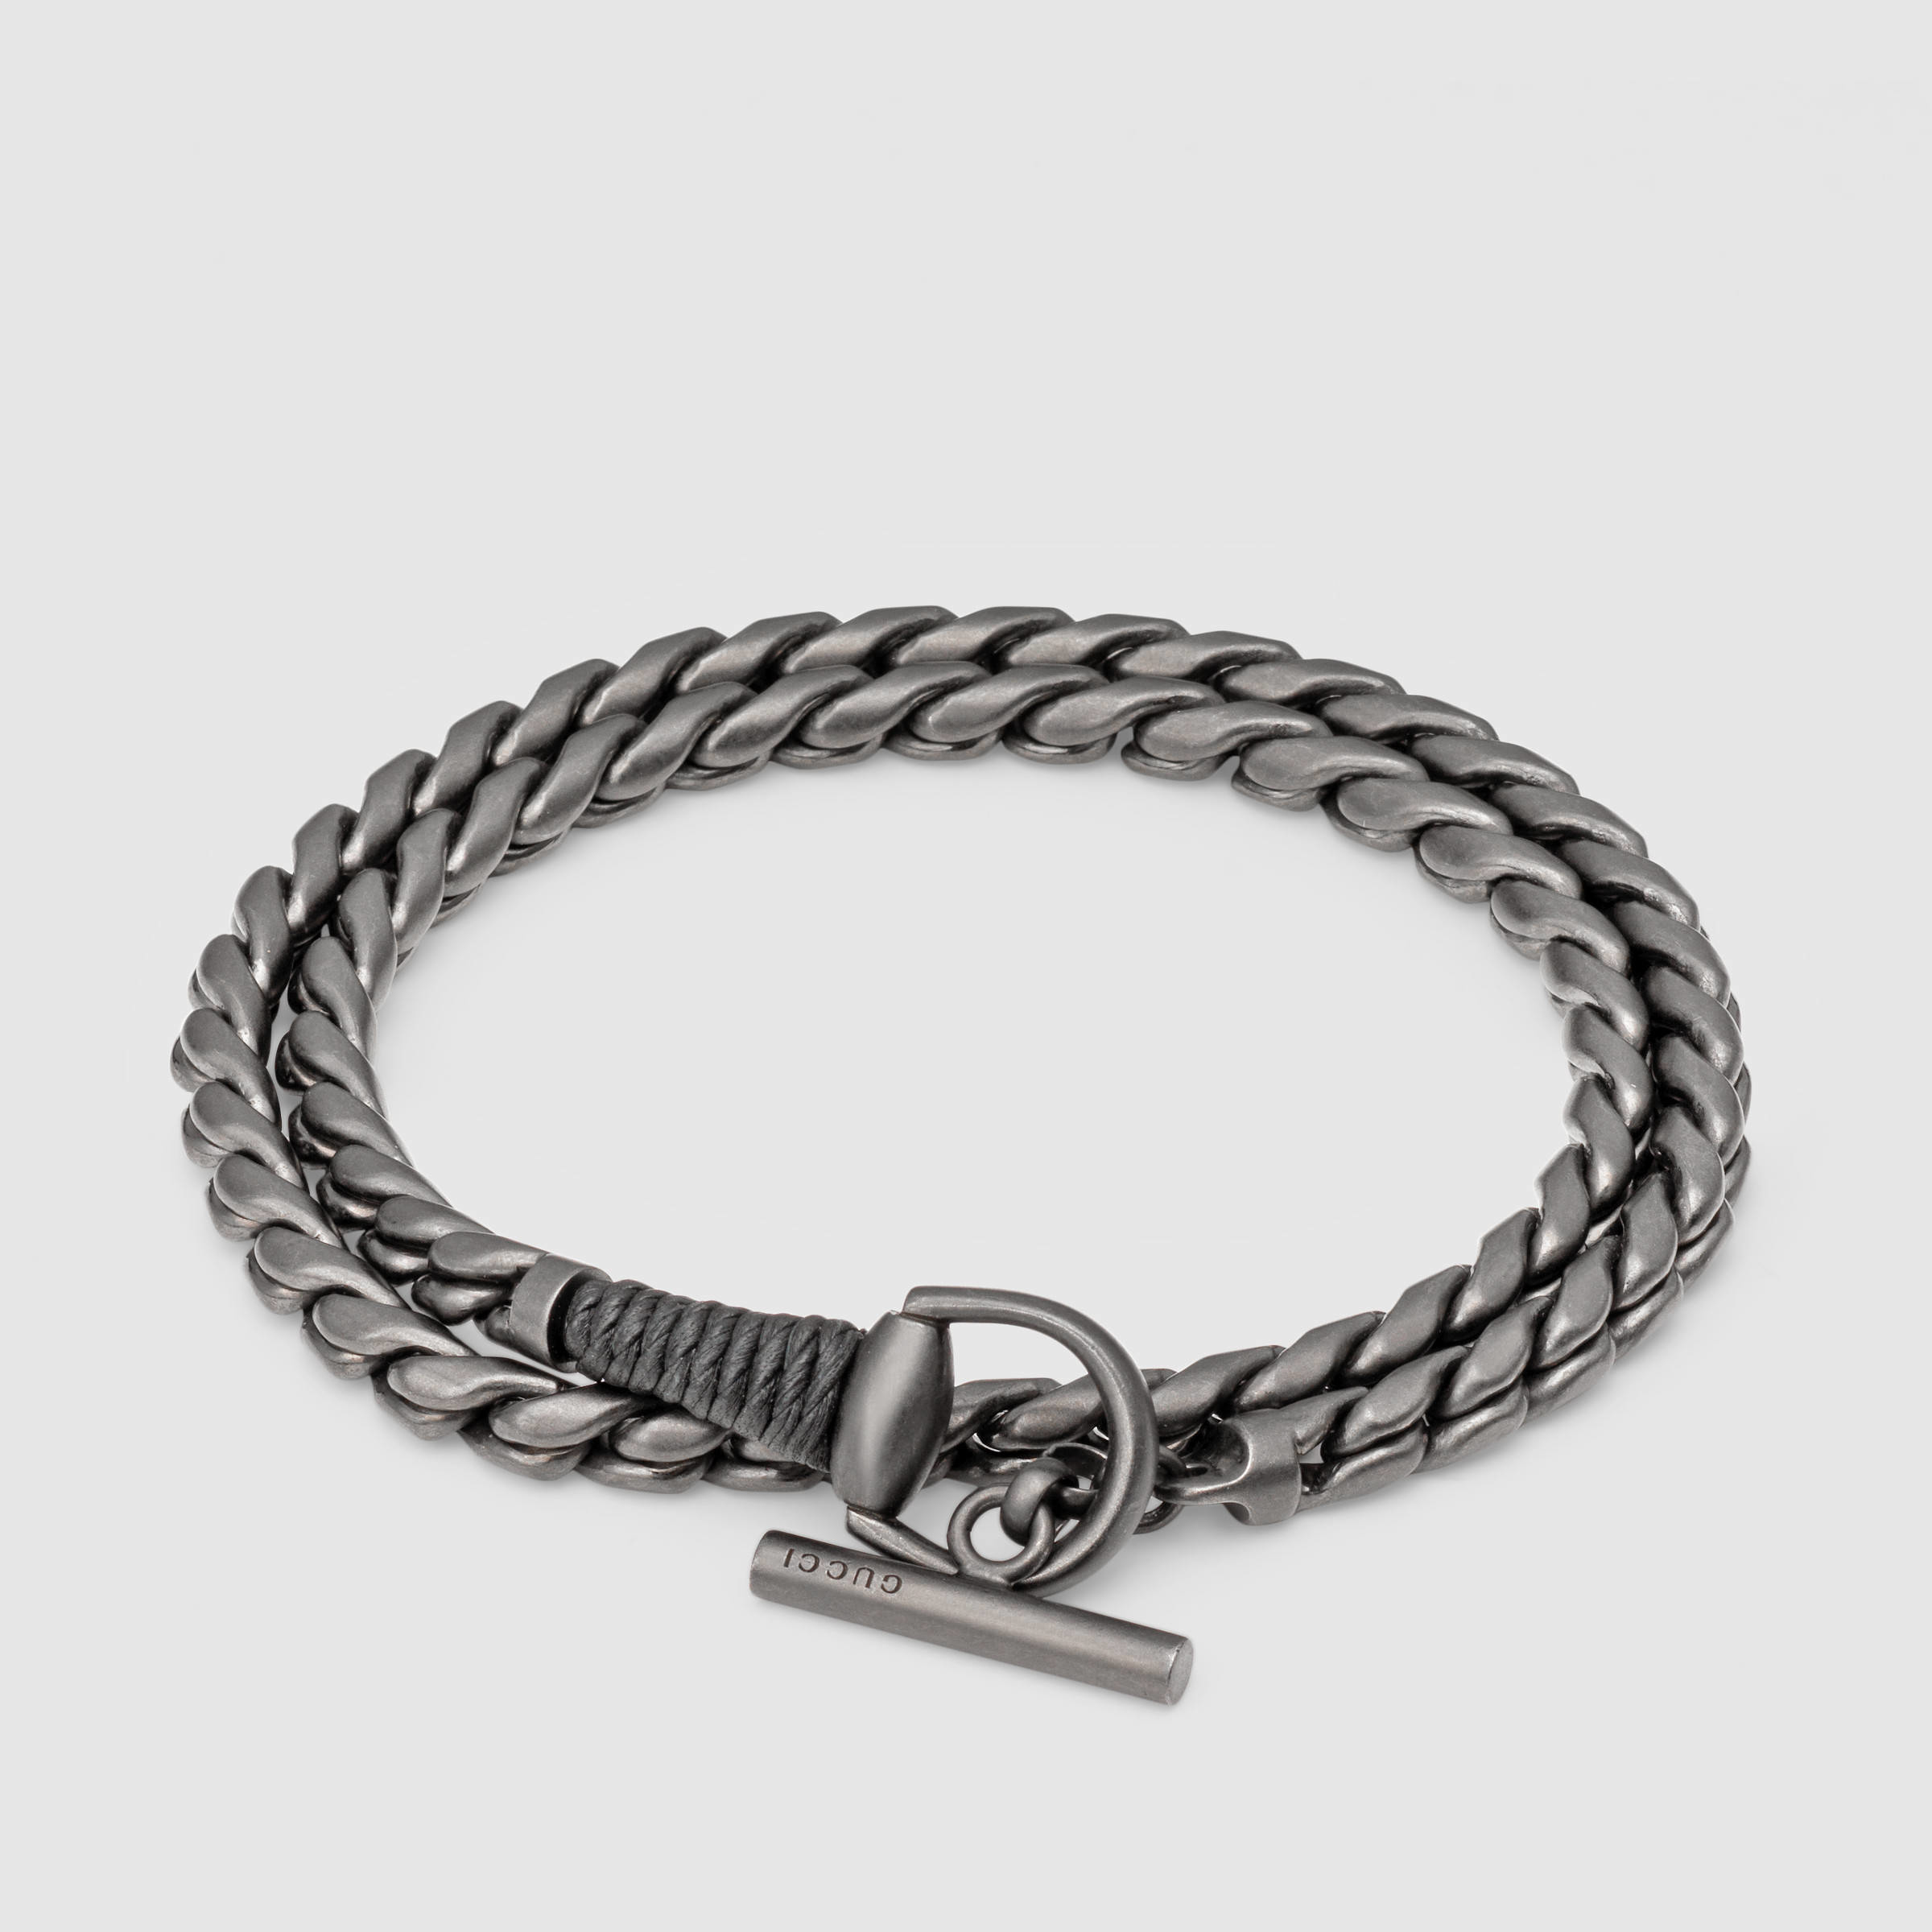 Gucci chain bracelet - Metallic